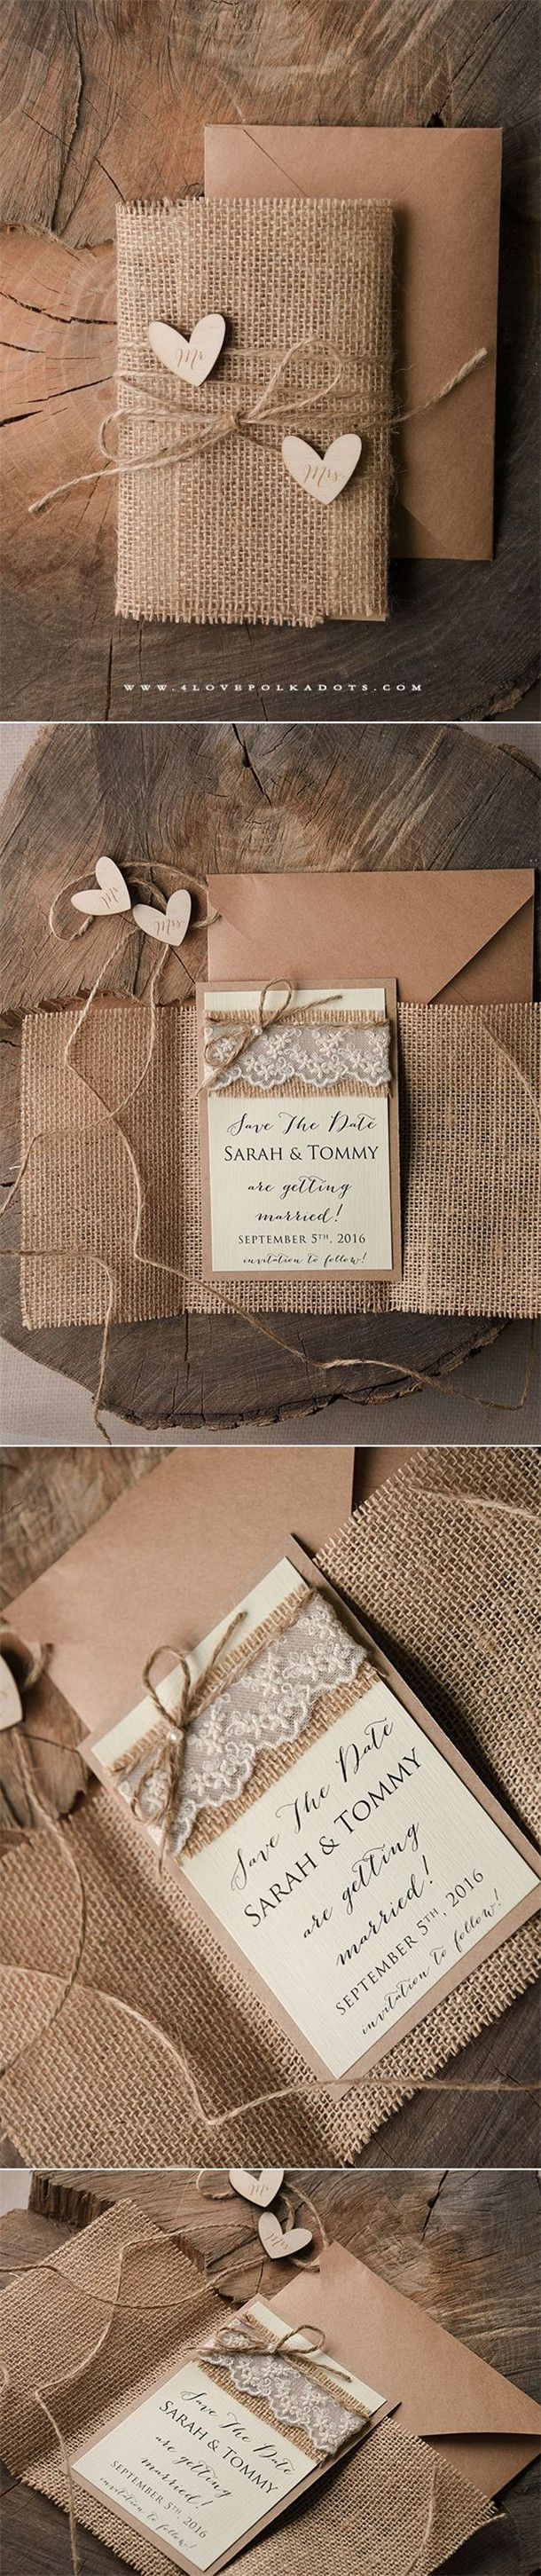 Burlap Wedding invitations and Save the Date Card with wooden tags